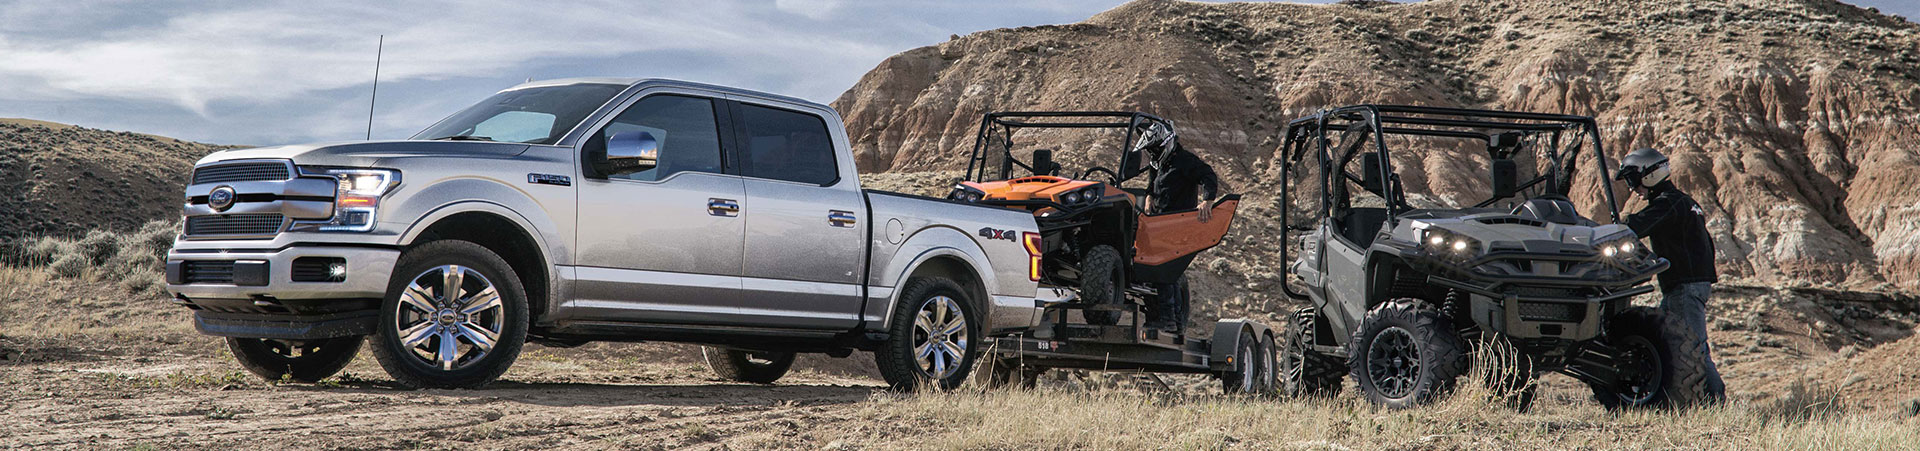 2018 Ford F-150 - Bob Moore Ford Blog